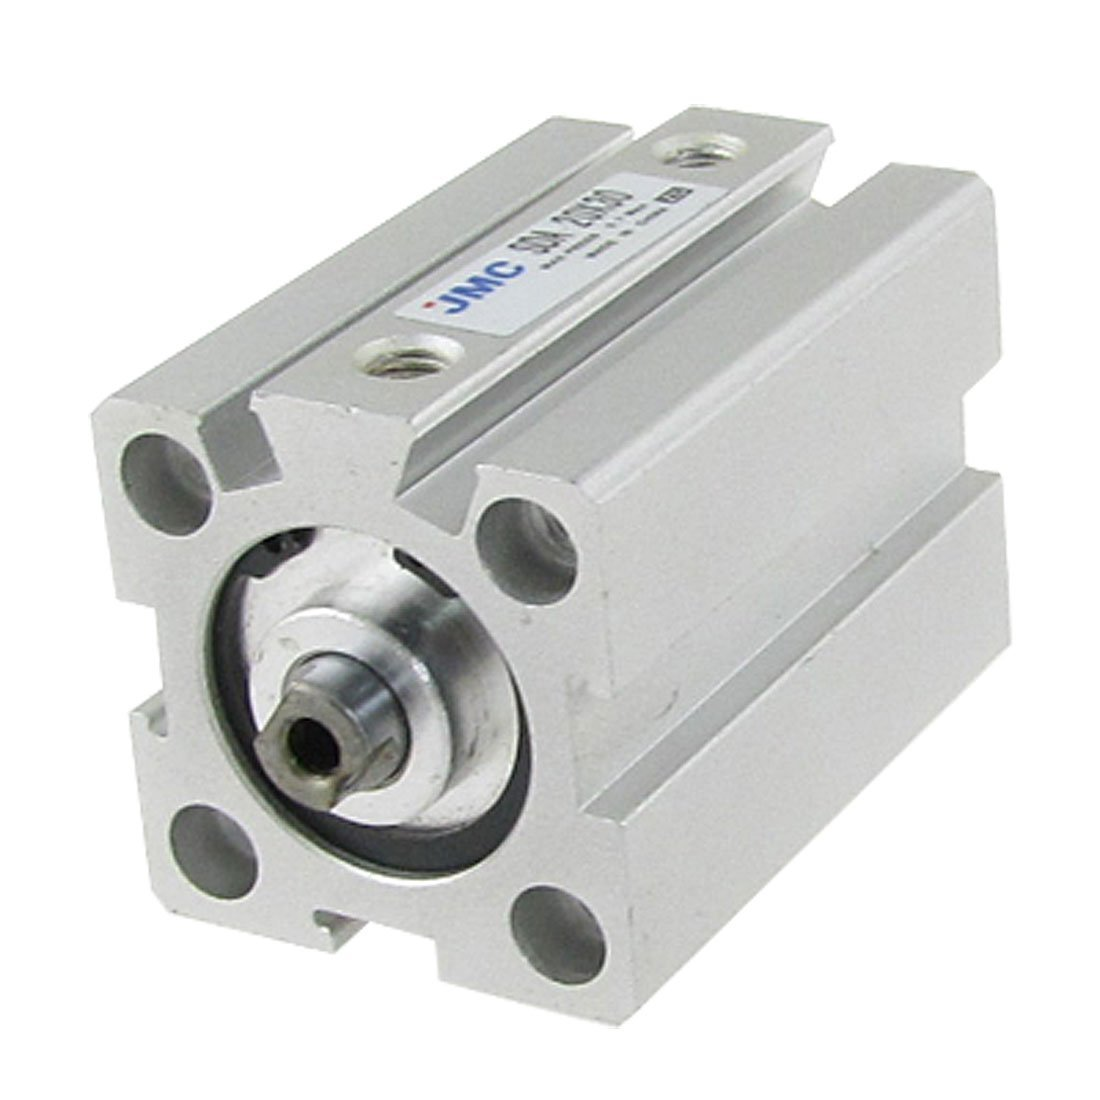 SDA 20x30 20mm Bore 30mm Stroke Double Action Penumatic Thin Air Cylinder DealMux DLM-B008MNMQSG